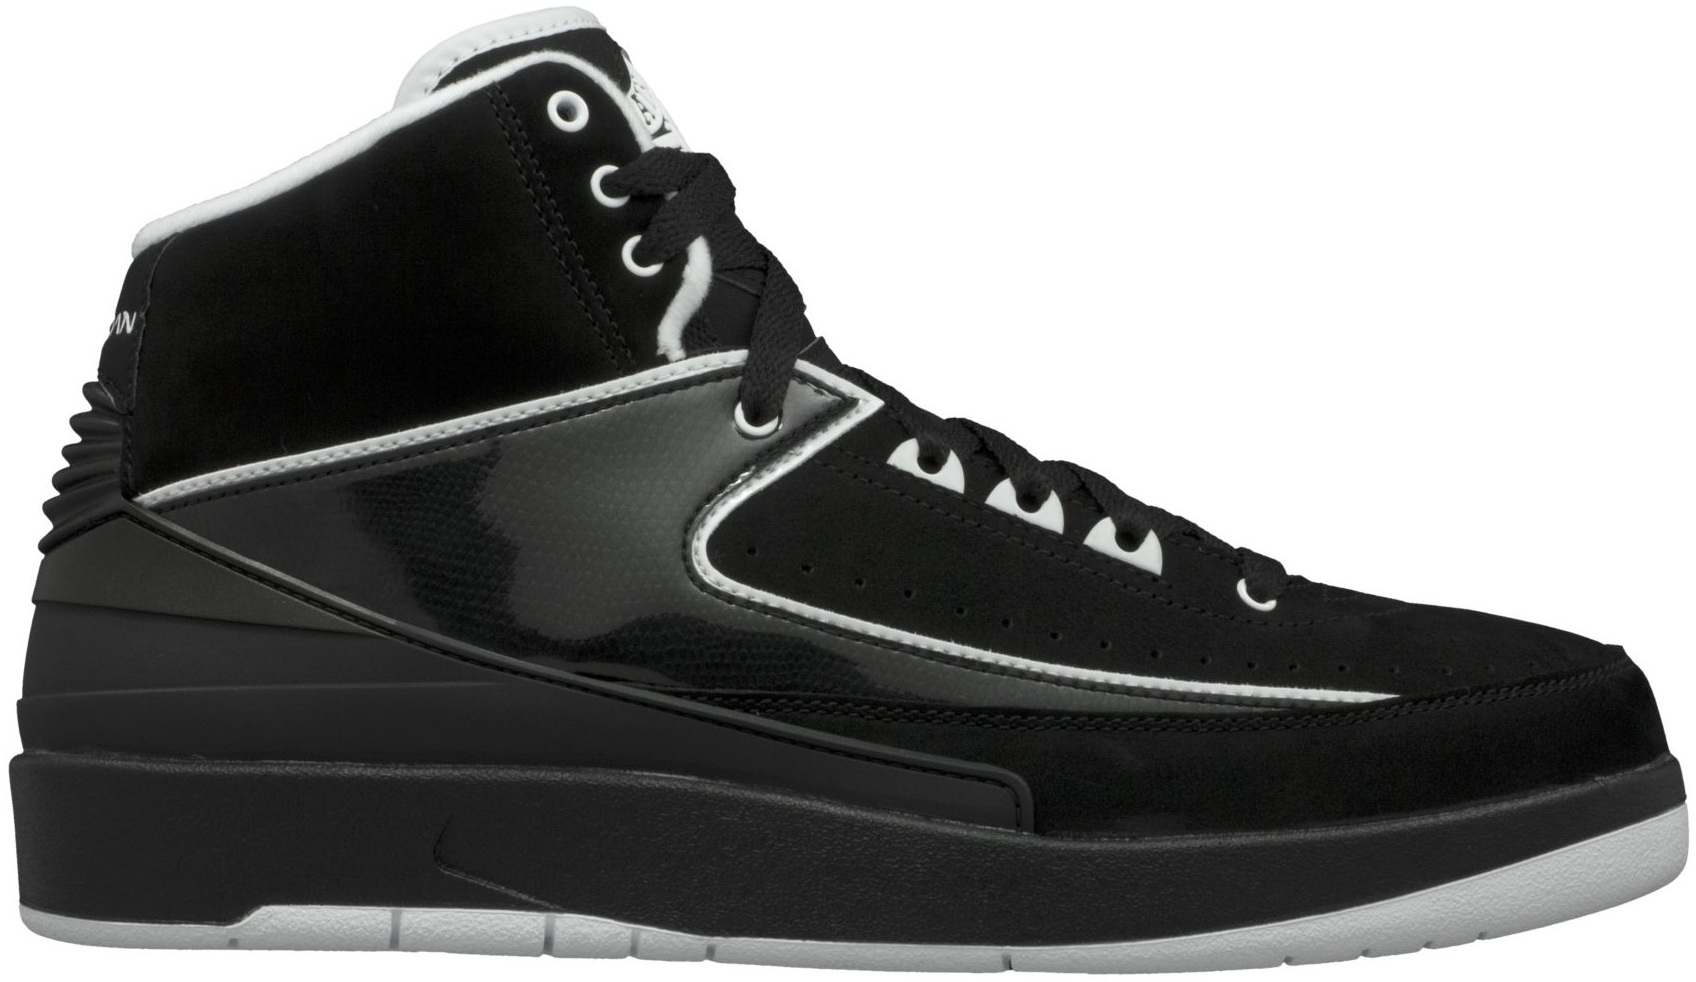 timeless design 4a7d3 ab3bc ... czech air jordan 2 retro qf black white 73f5f 7bab4